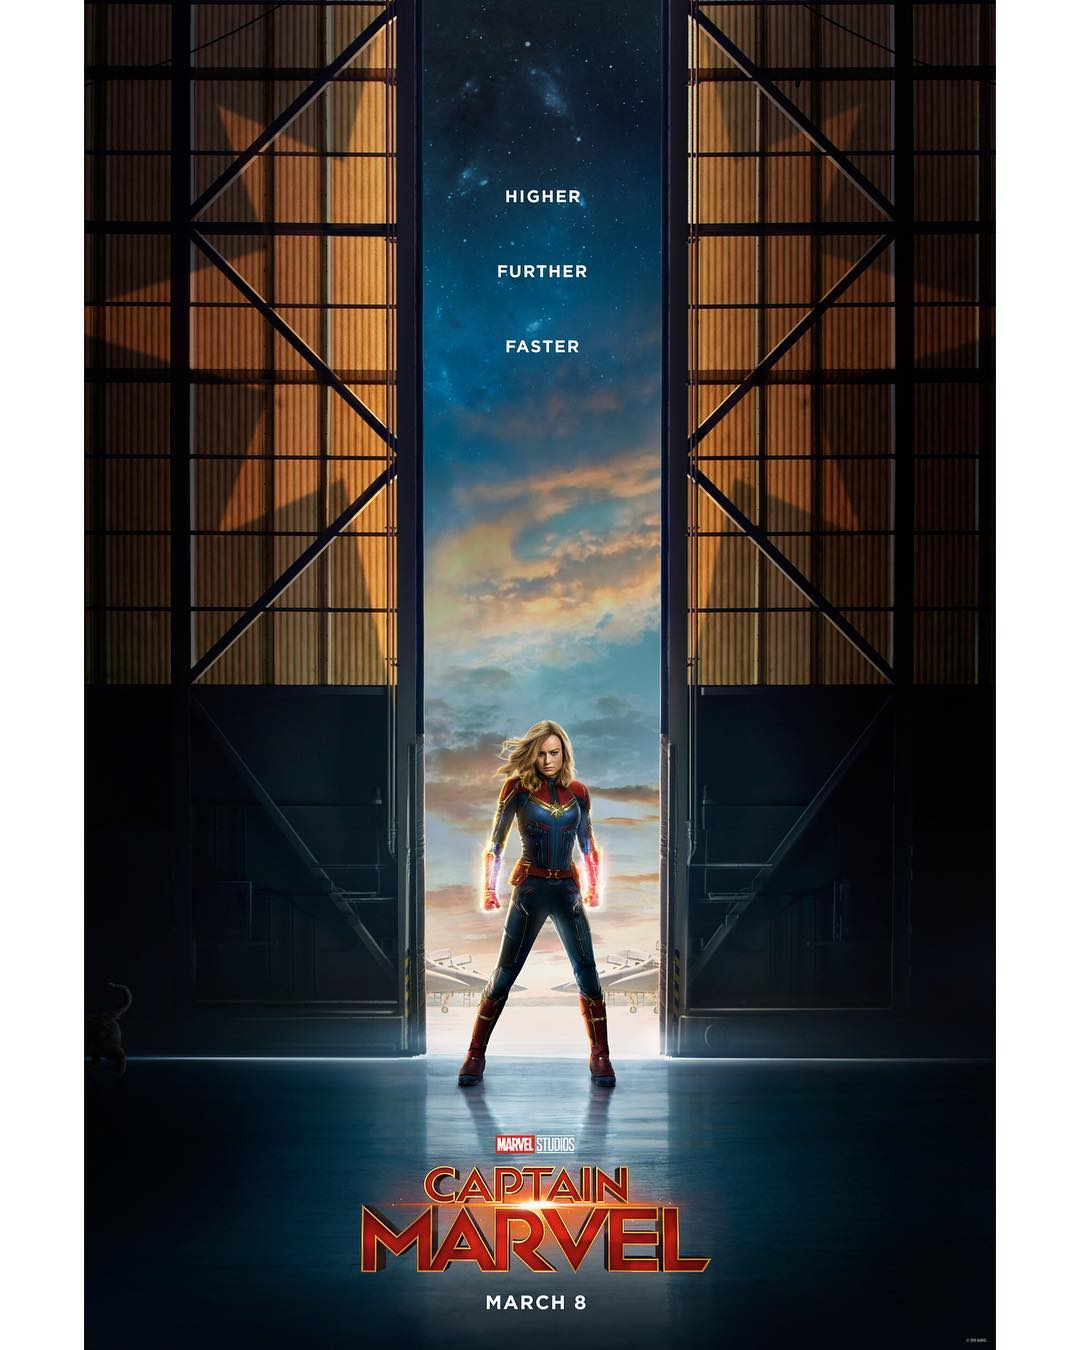 Standout Moments from the 'Captain Marvel' Trailer